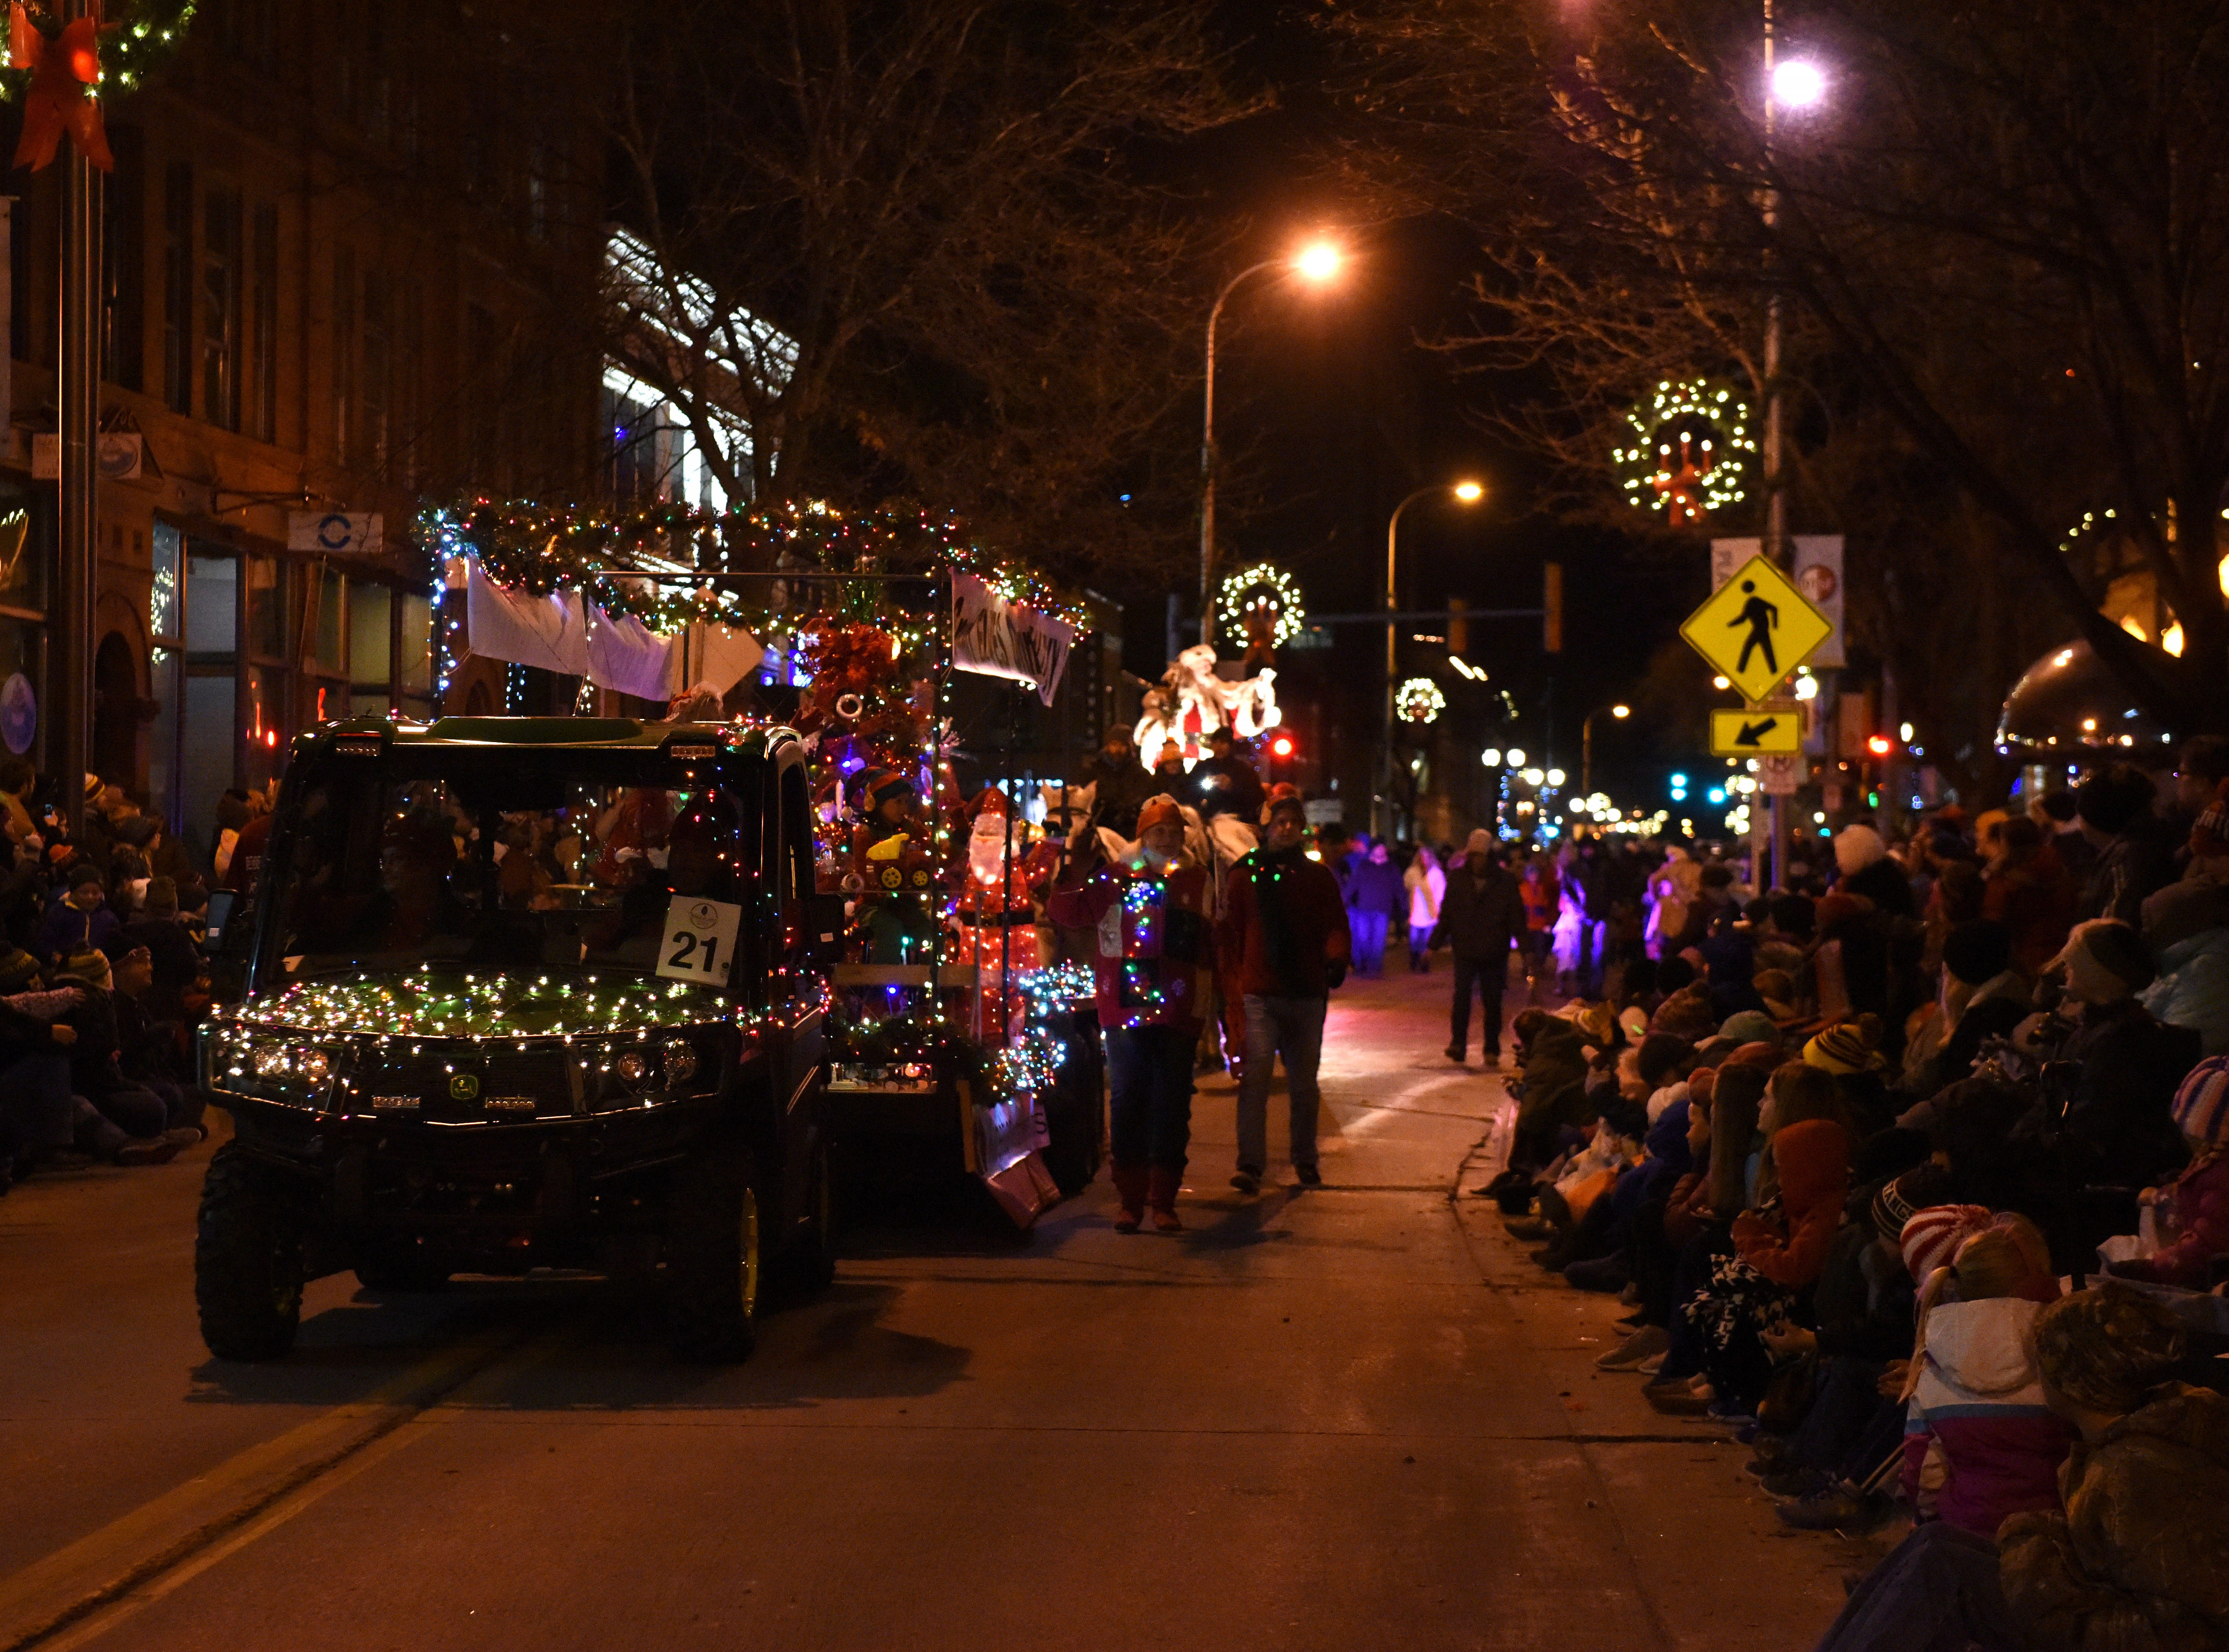 People gather to watch the annual Parade of Lights in downtown Sioux Falls, S.D., Friday, Nov. 23, 2018.